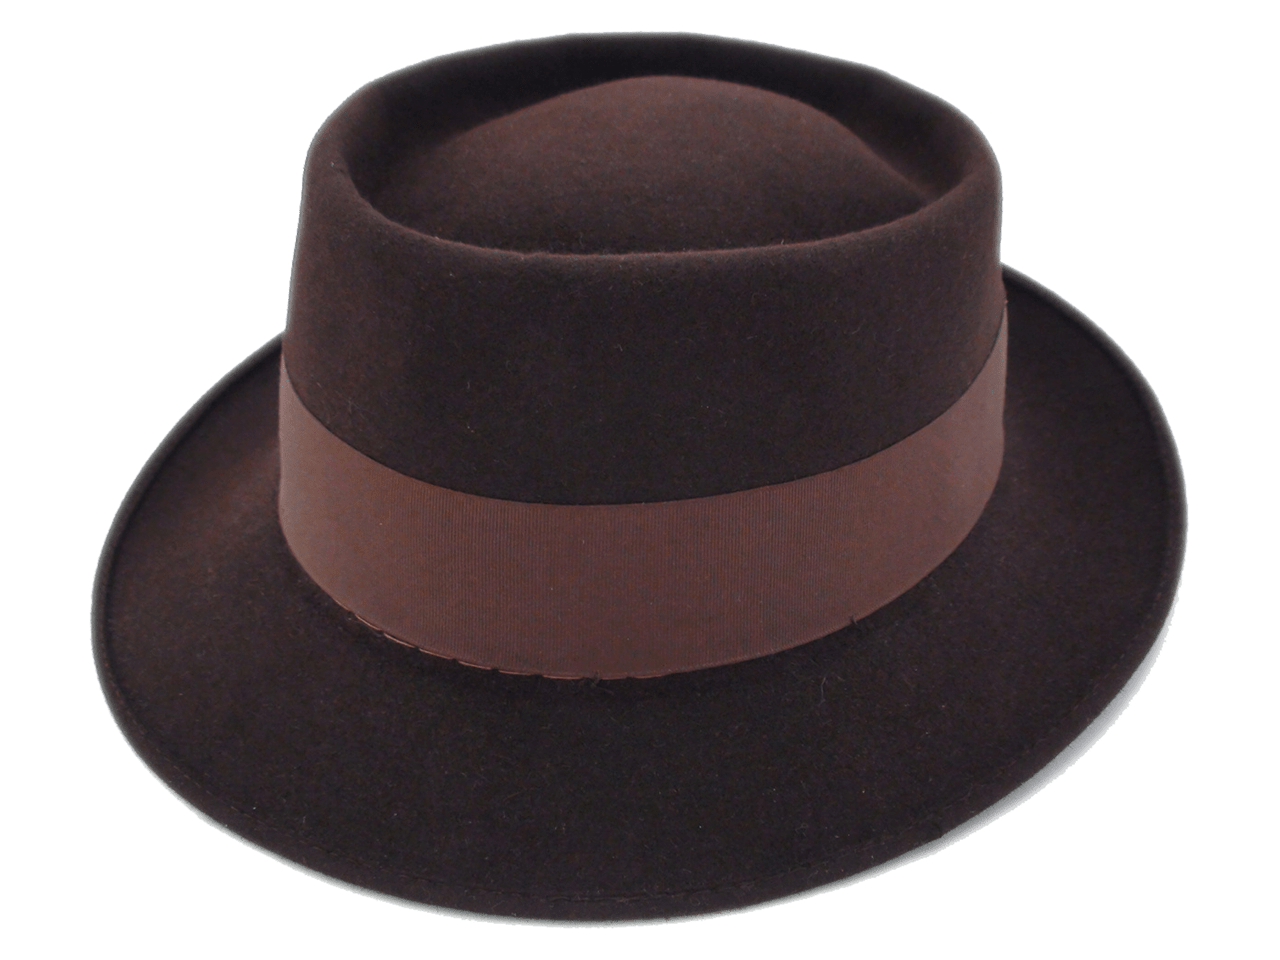 Vintage Adam Hats Pork Pie Brown Fur Felt Fedora Hat 5996c3db5c8